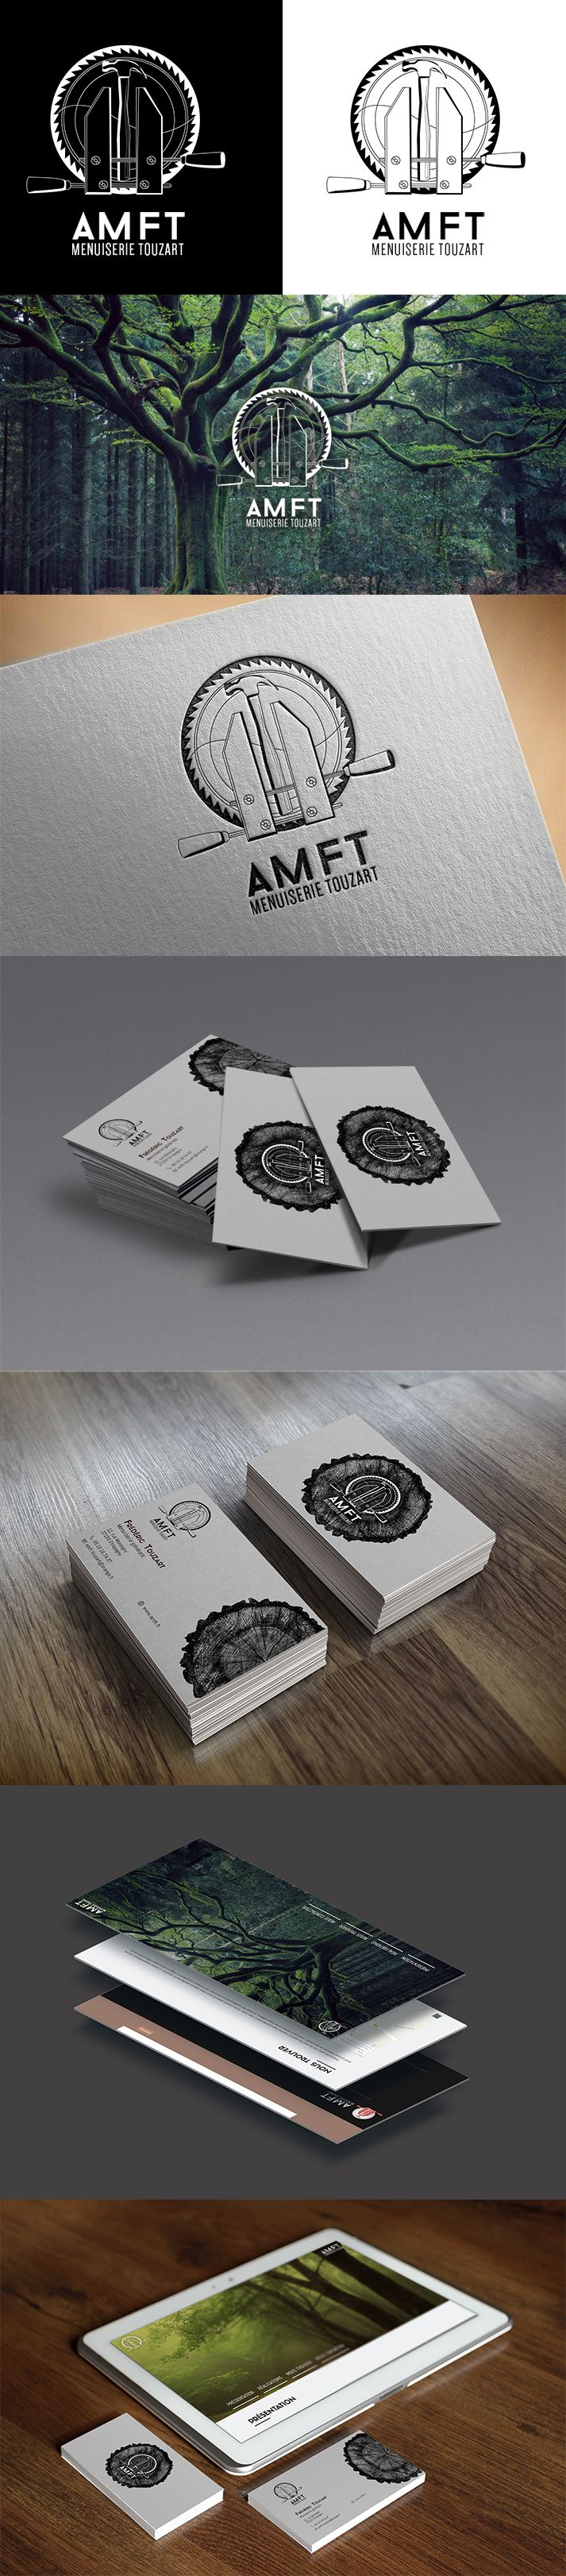 19 best business card images on pinterest